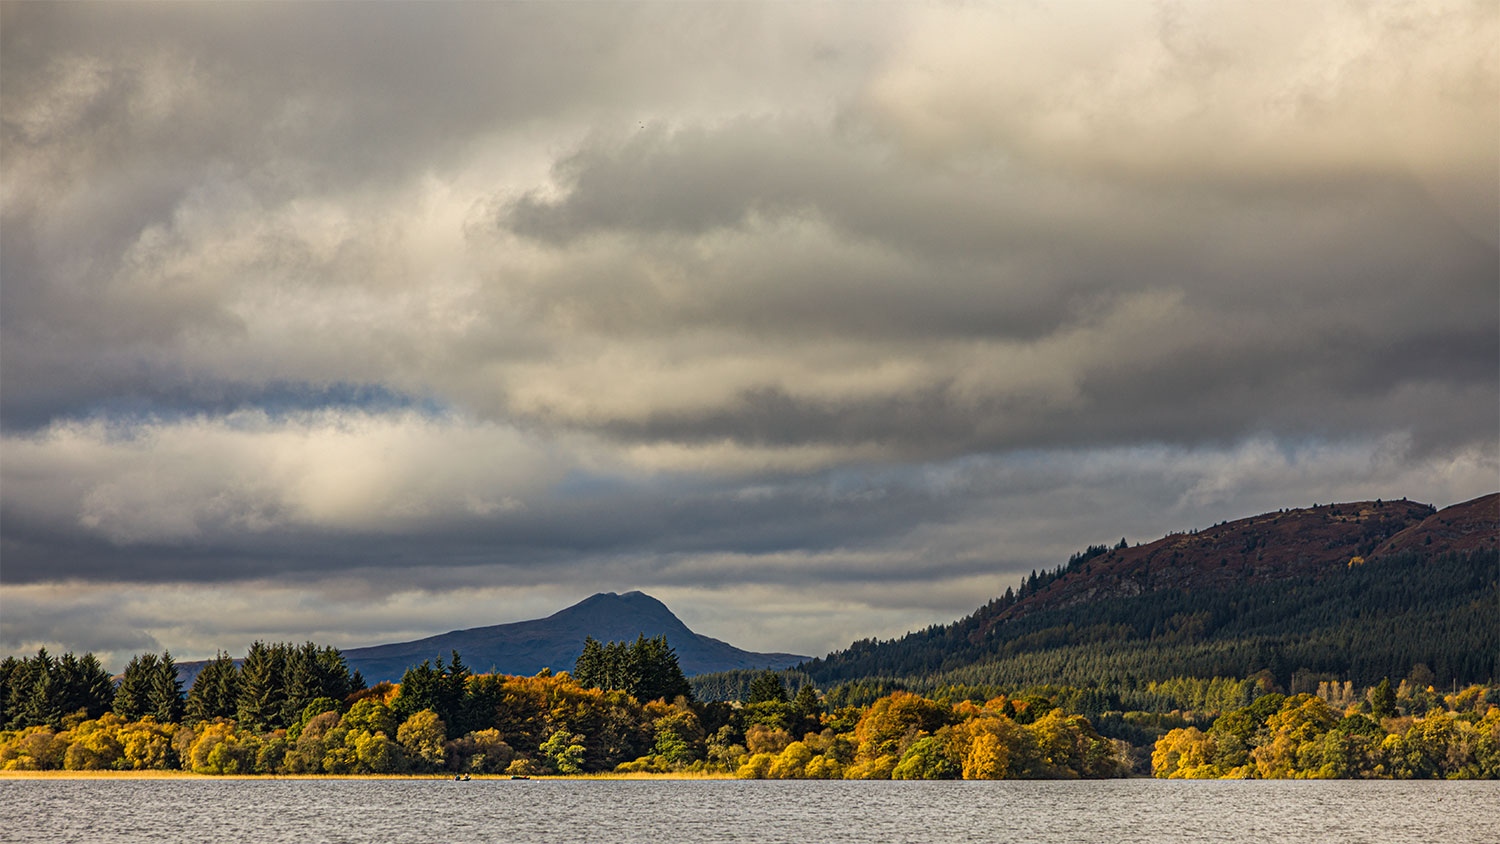 Menteith16Oct20_4500-HDR.jpg